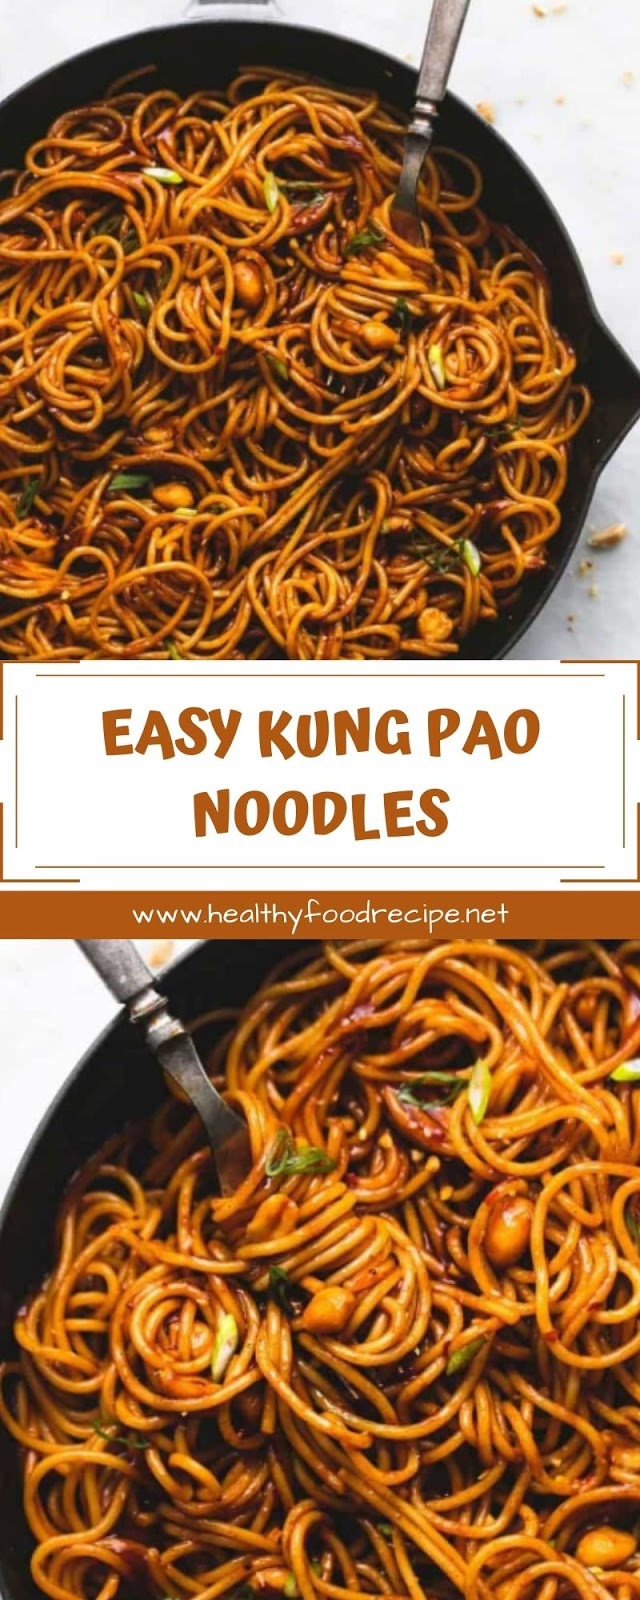 EASY KUNG PAO NOODLES